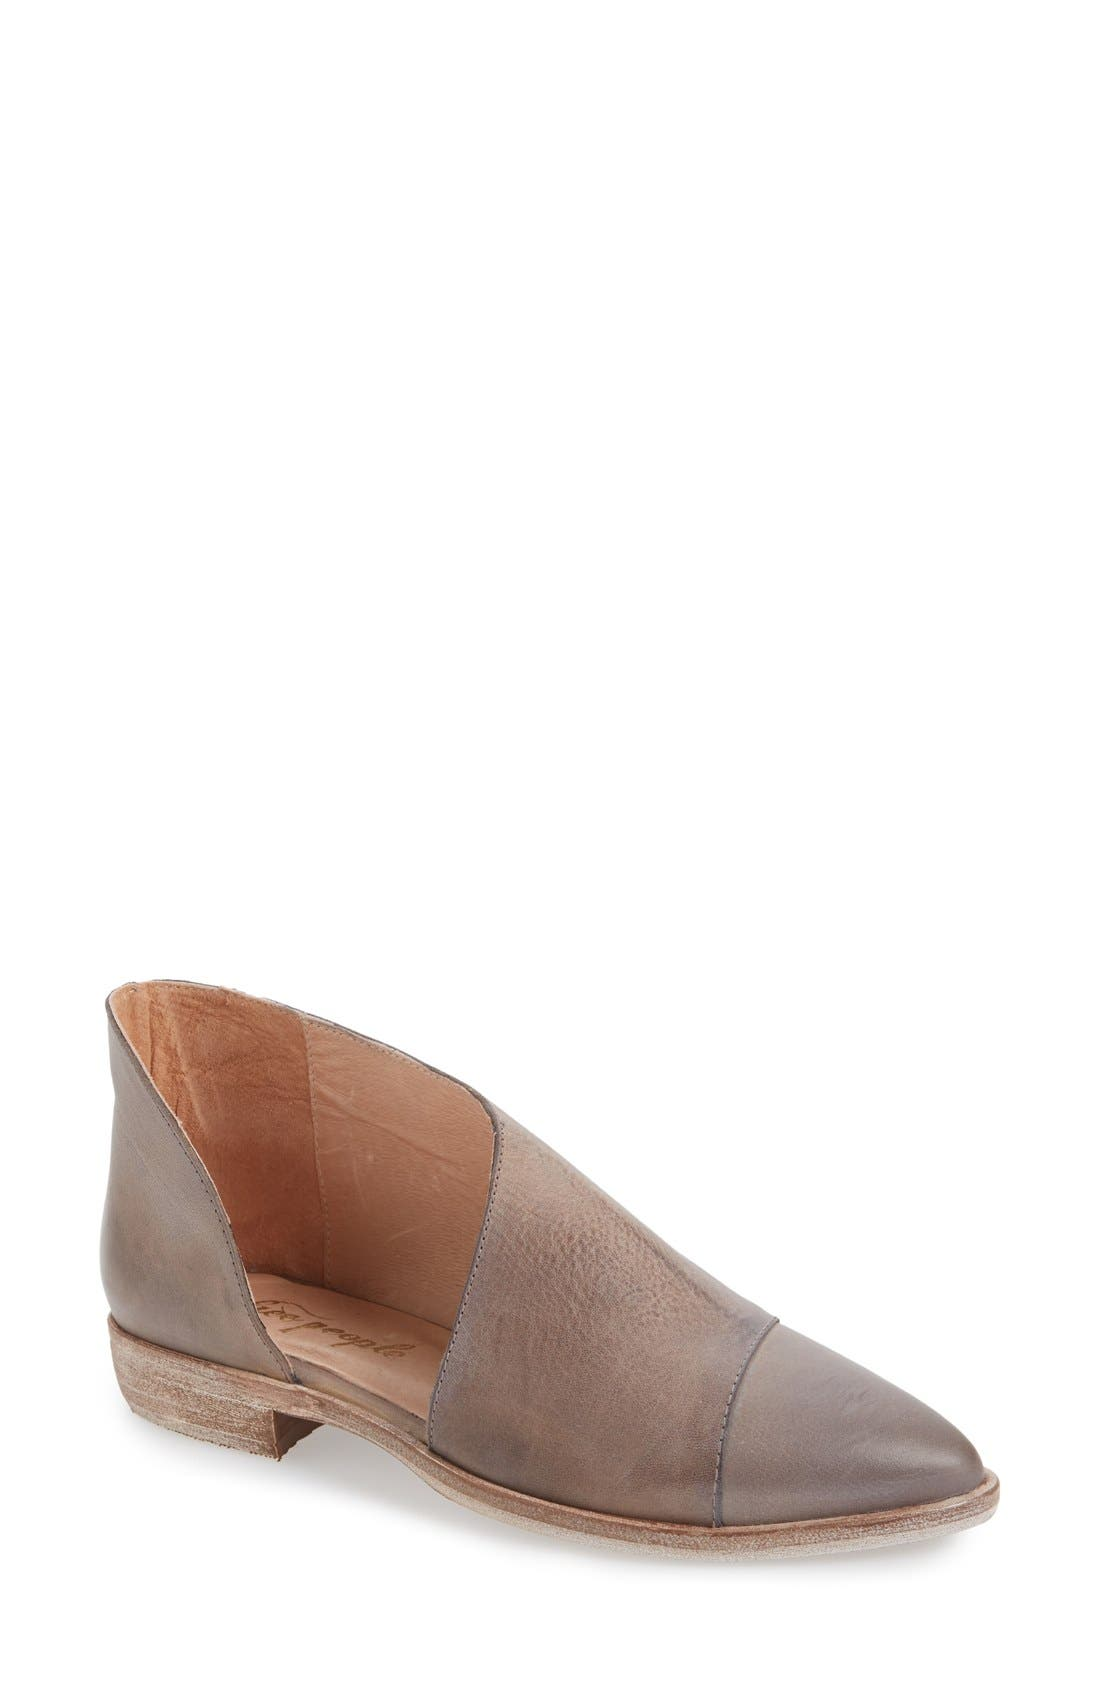 'Royale' Pointy Toe Flat,                             Main thumbnail 1, color,                             GREY LEATHER